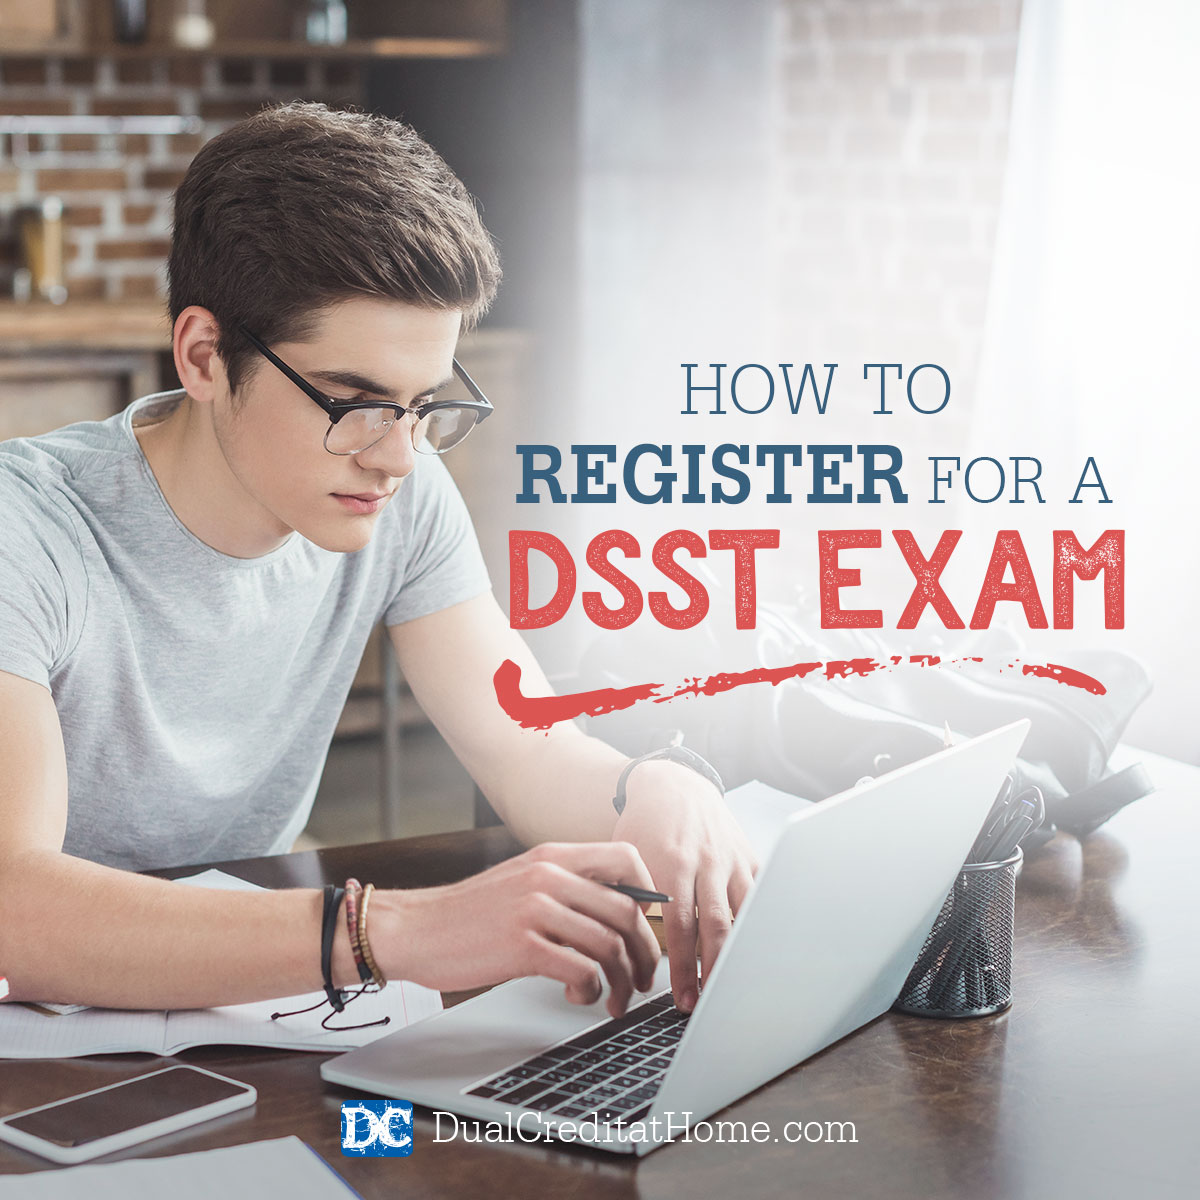 How to Register for a DSST Exam